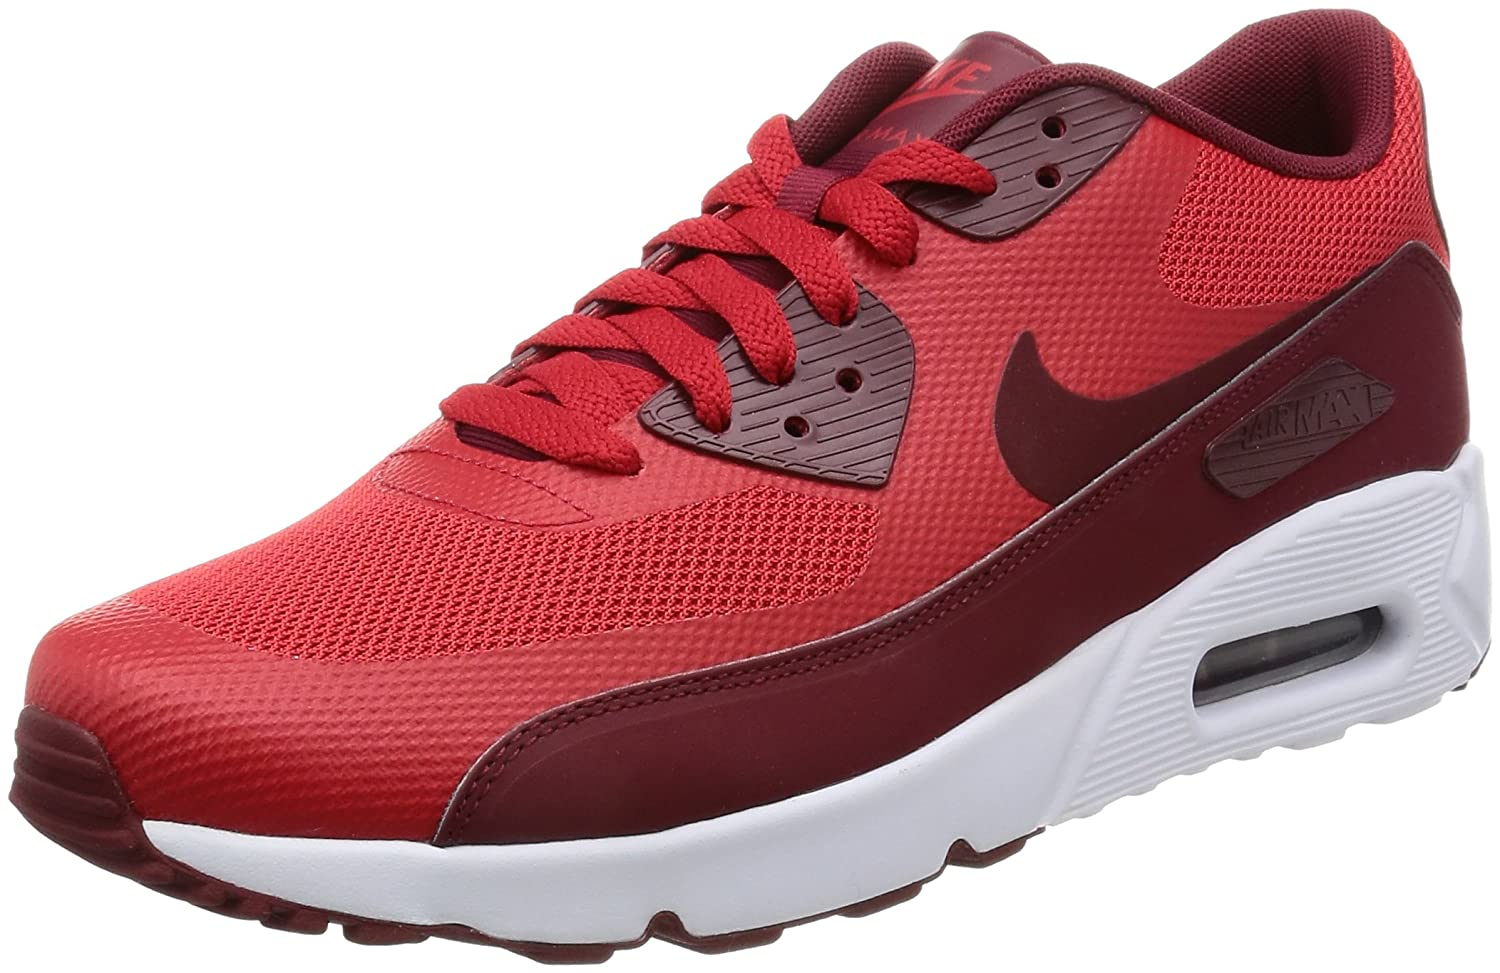 buy online c8ff8 5cec1 NIKE Men's Air Max 90 Ultra 2.0 Essential University Red/Team Red/White  Running Shoe 9 Men US